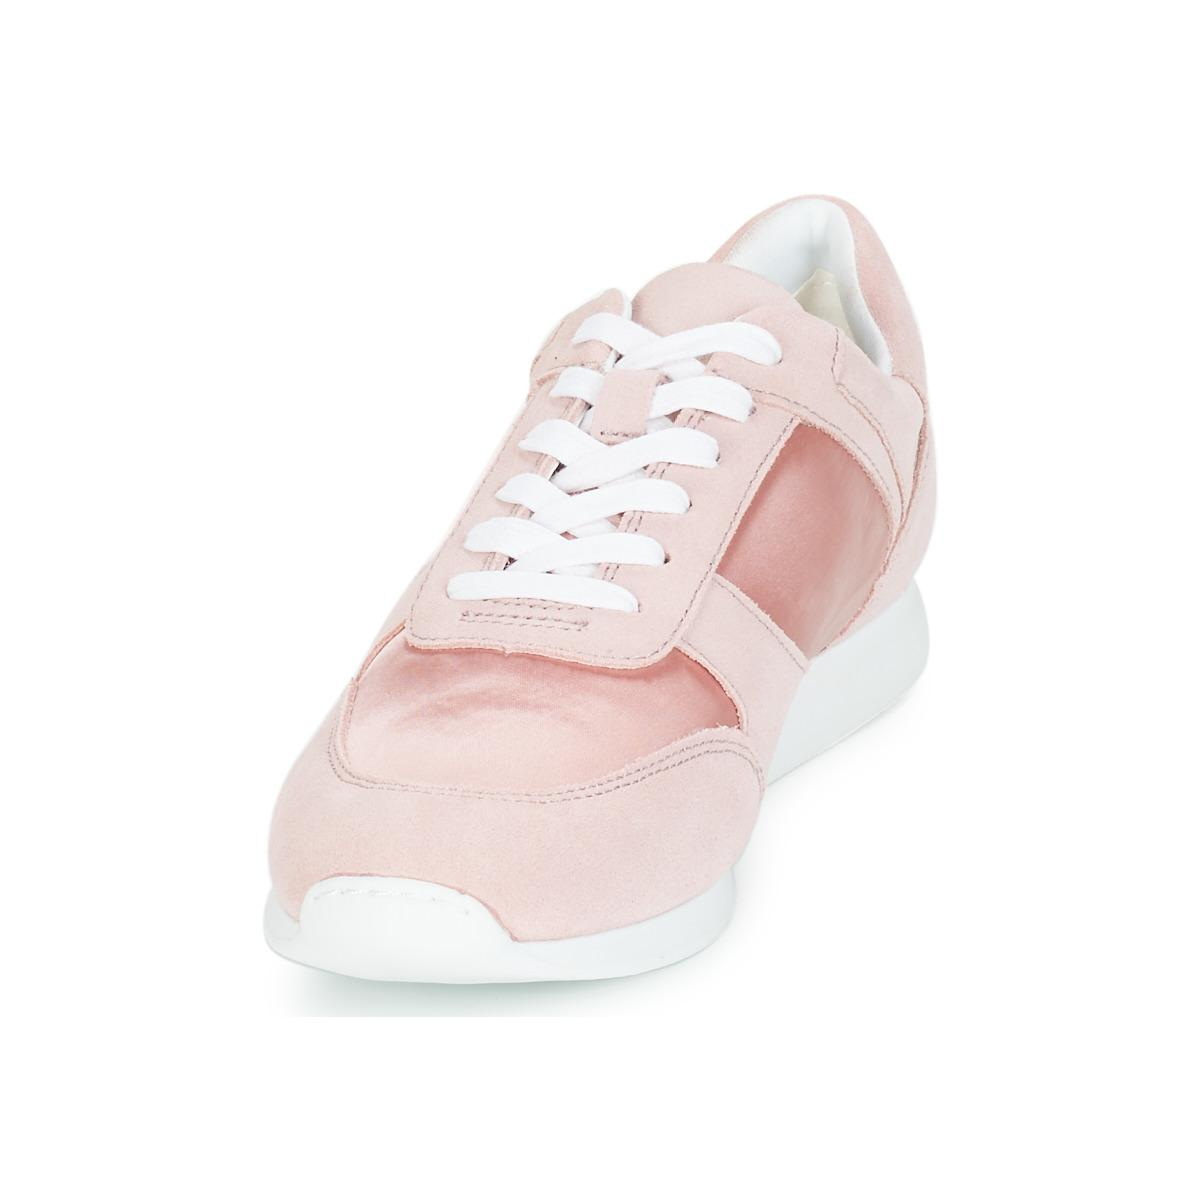 89ad0b749a5d Vagabond - Pink Kasai 2.1 Shoes (trainers) - Lyst. View fullscreen